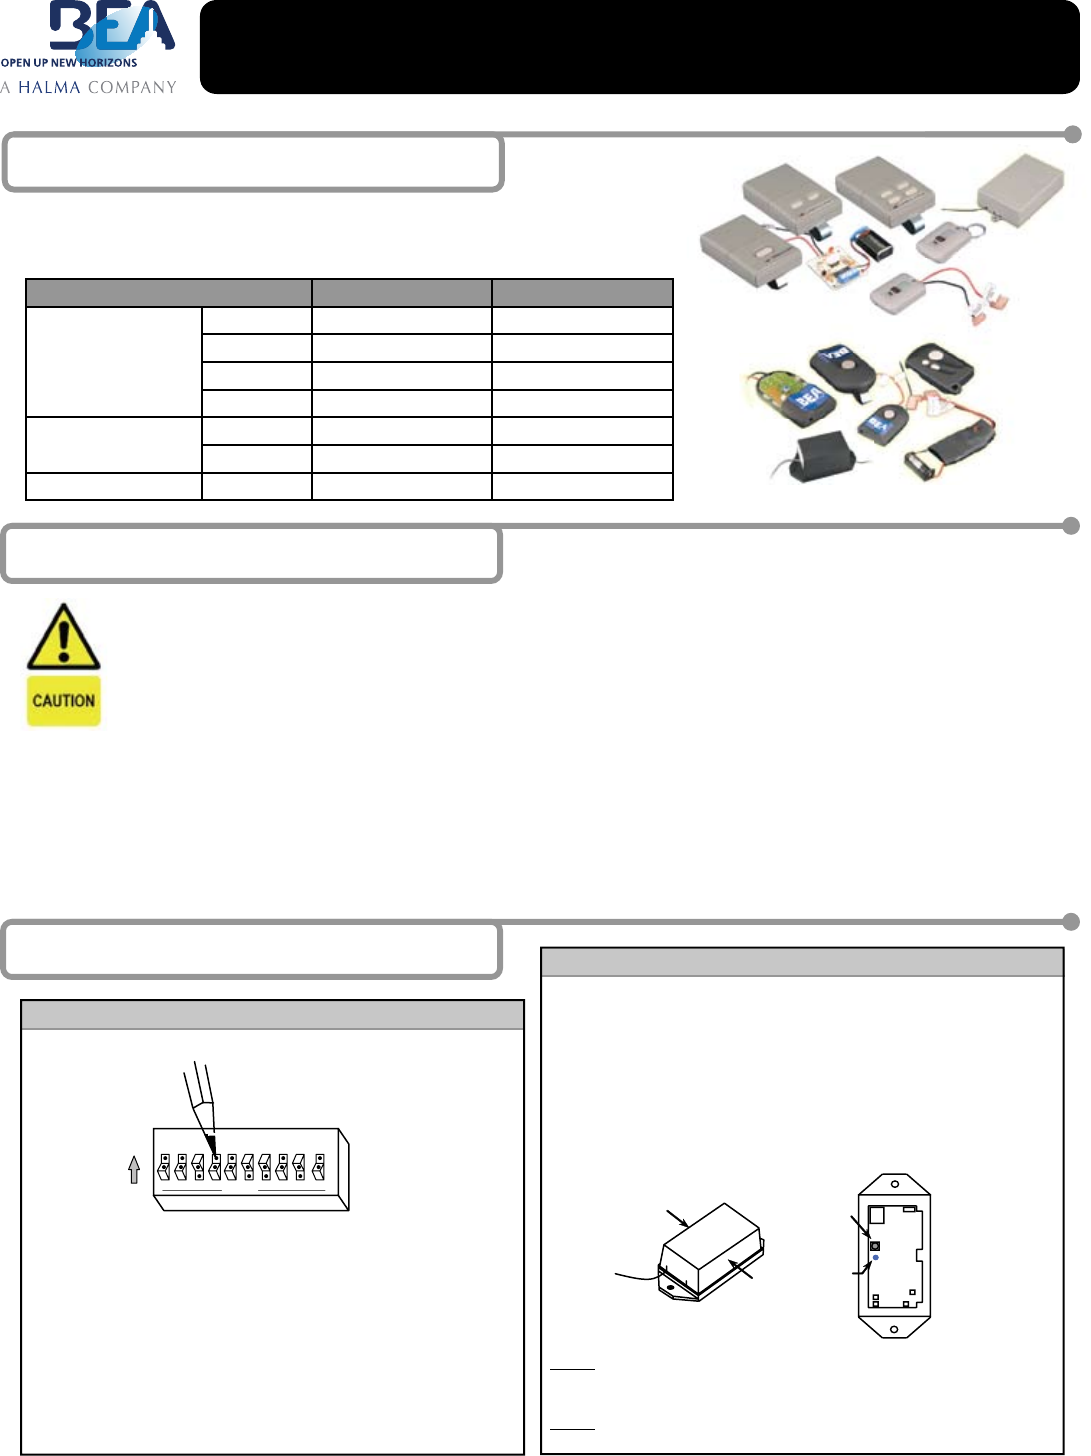 Bea 10t300hh Users Manual Wiring Diagrams